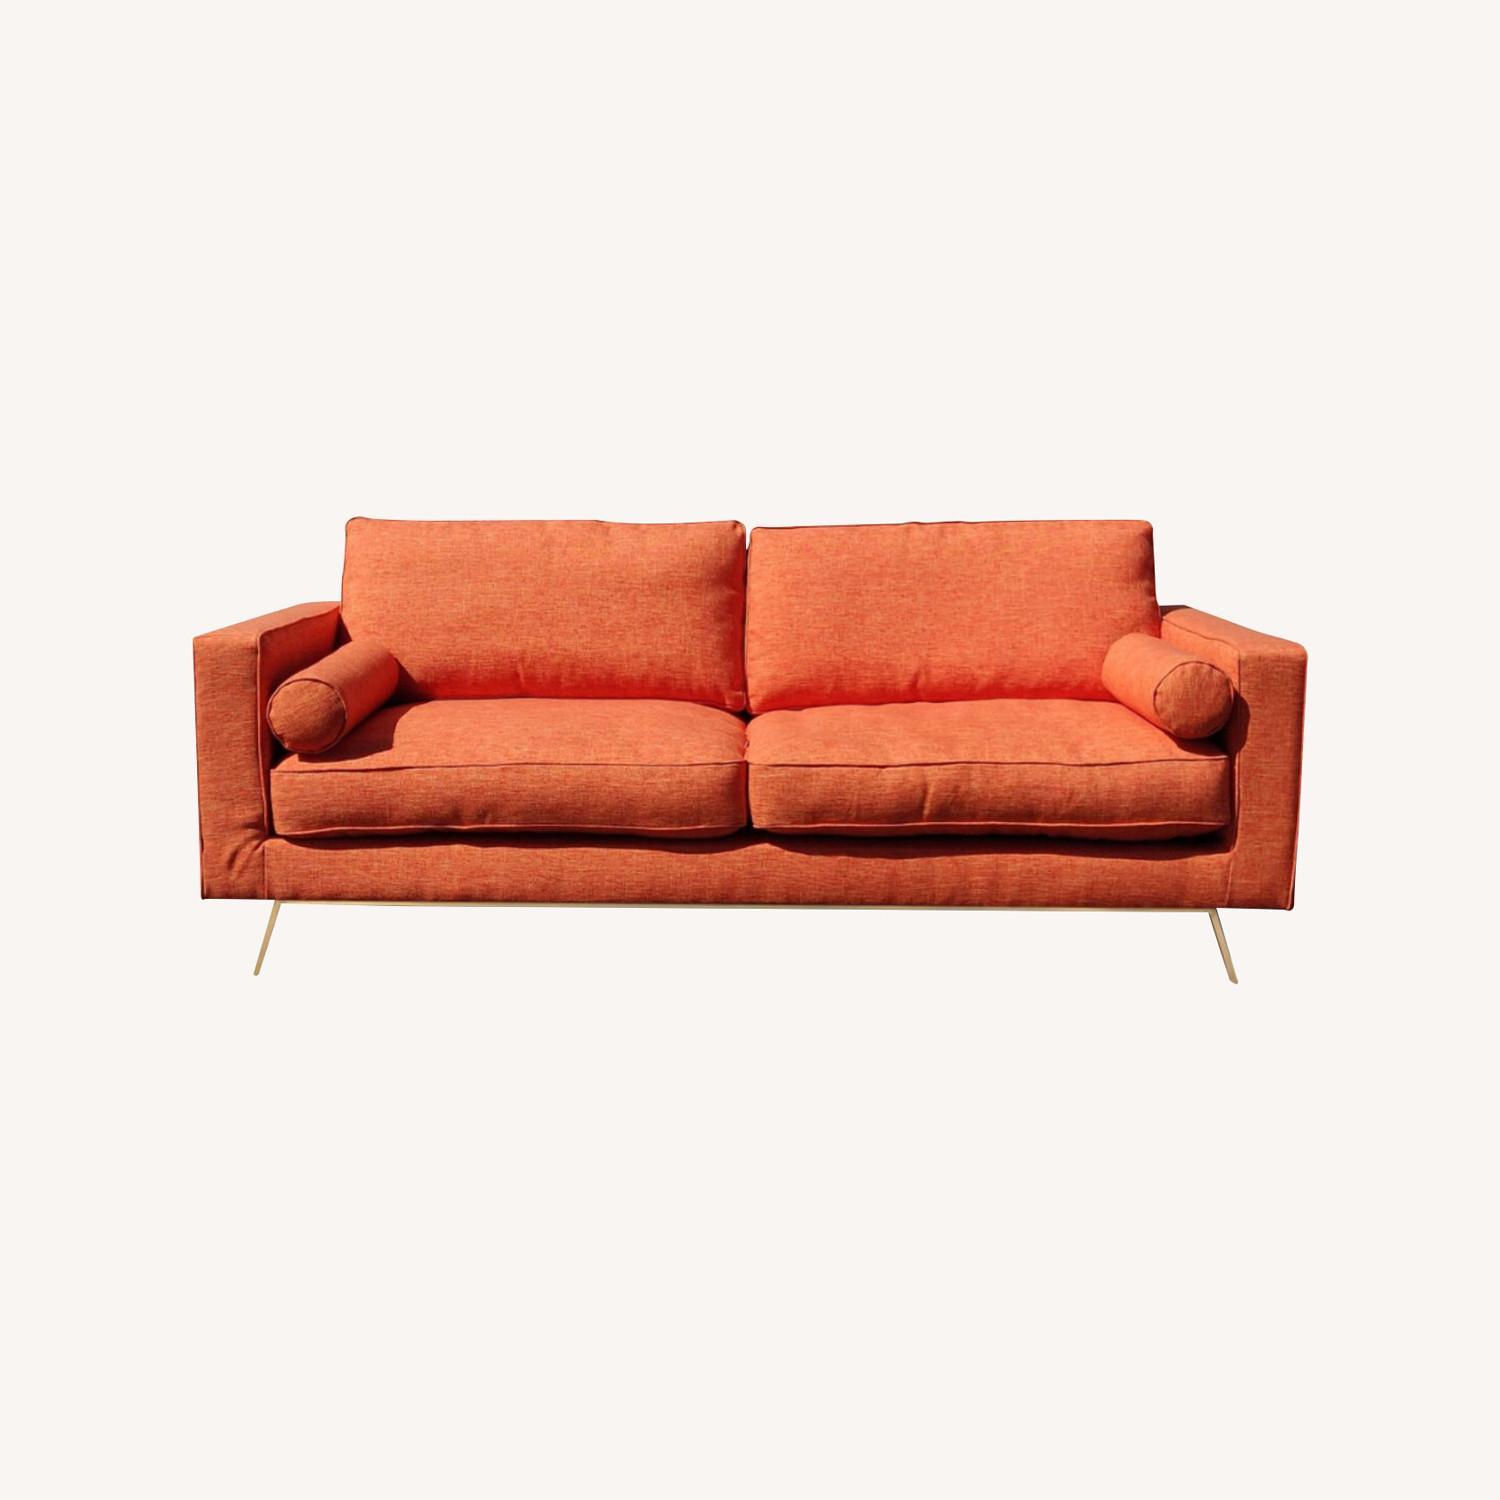 Brooklyn Space Introspect Mid Century Modern Sofa - image-0